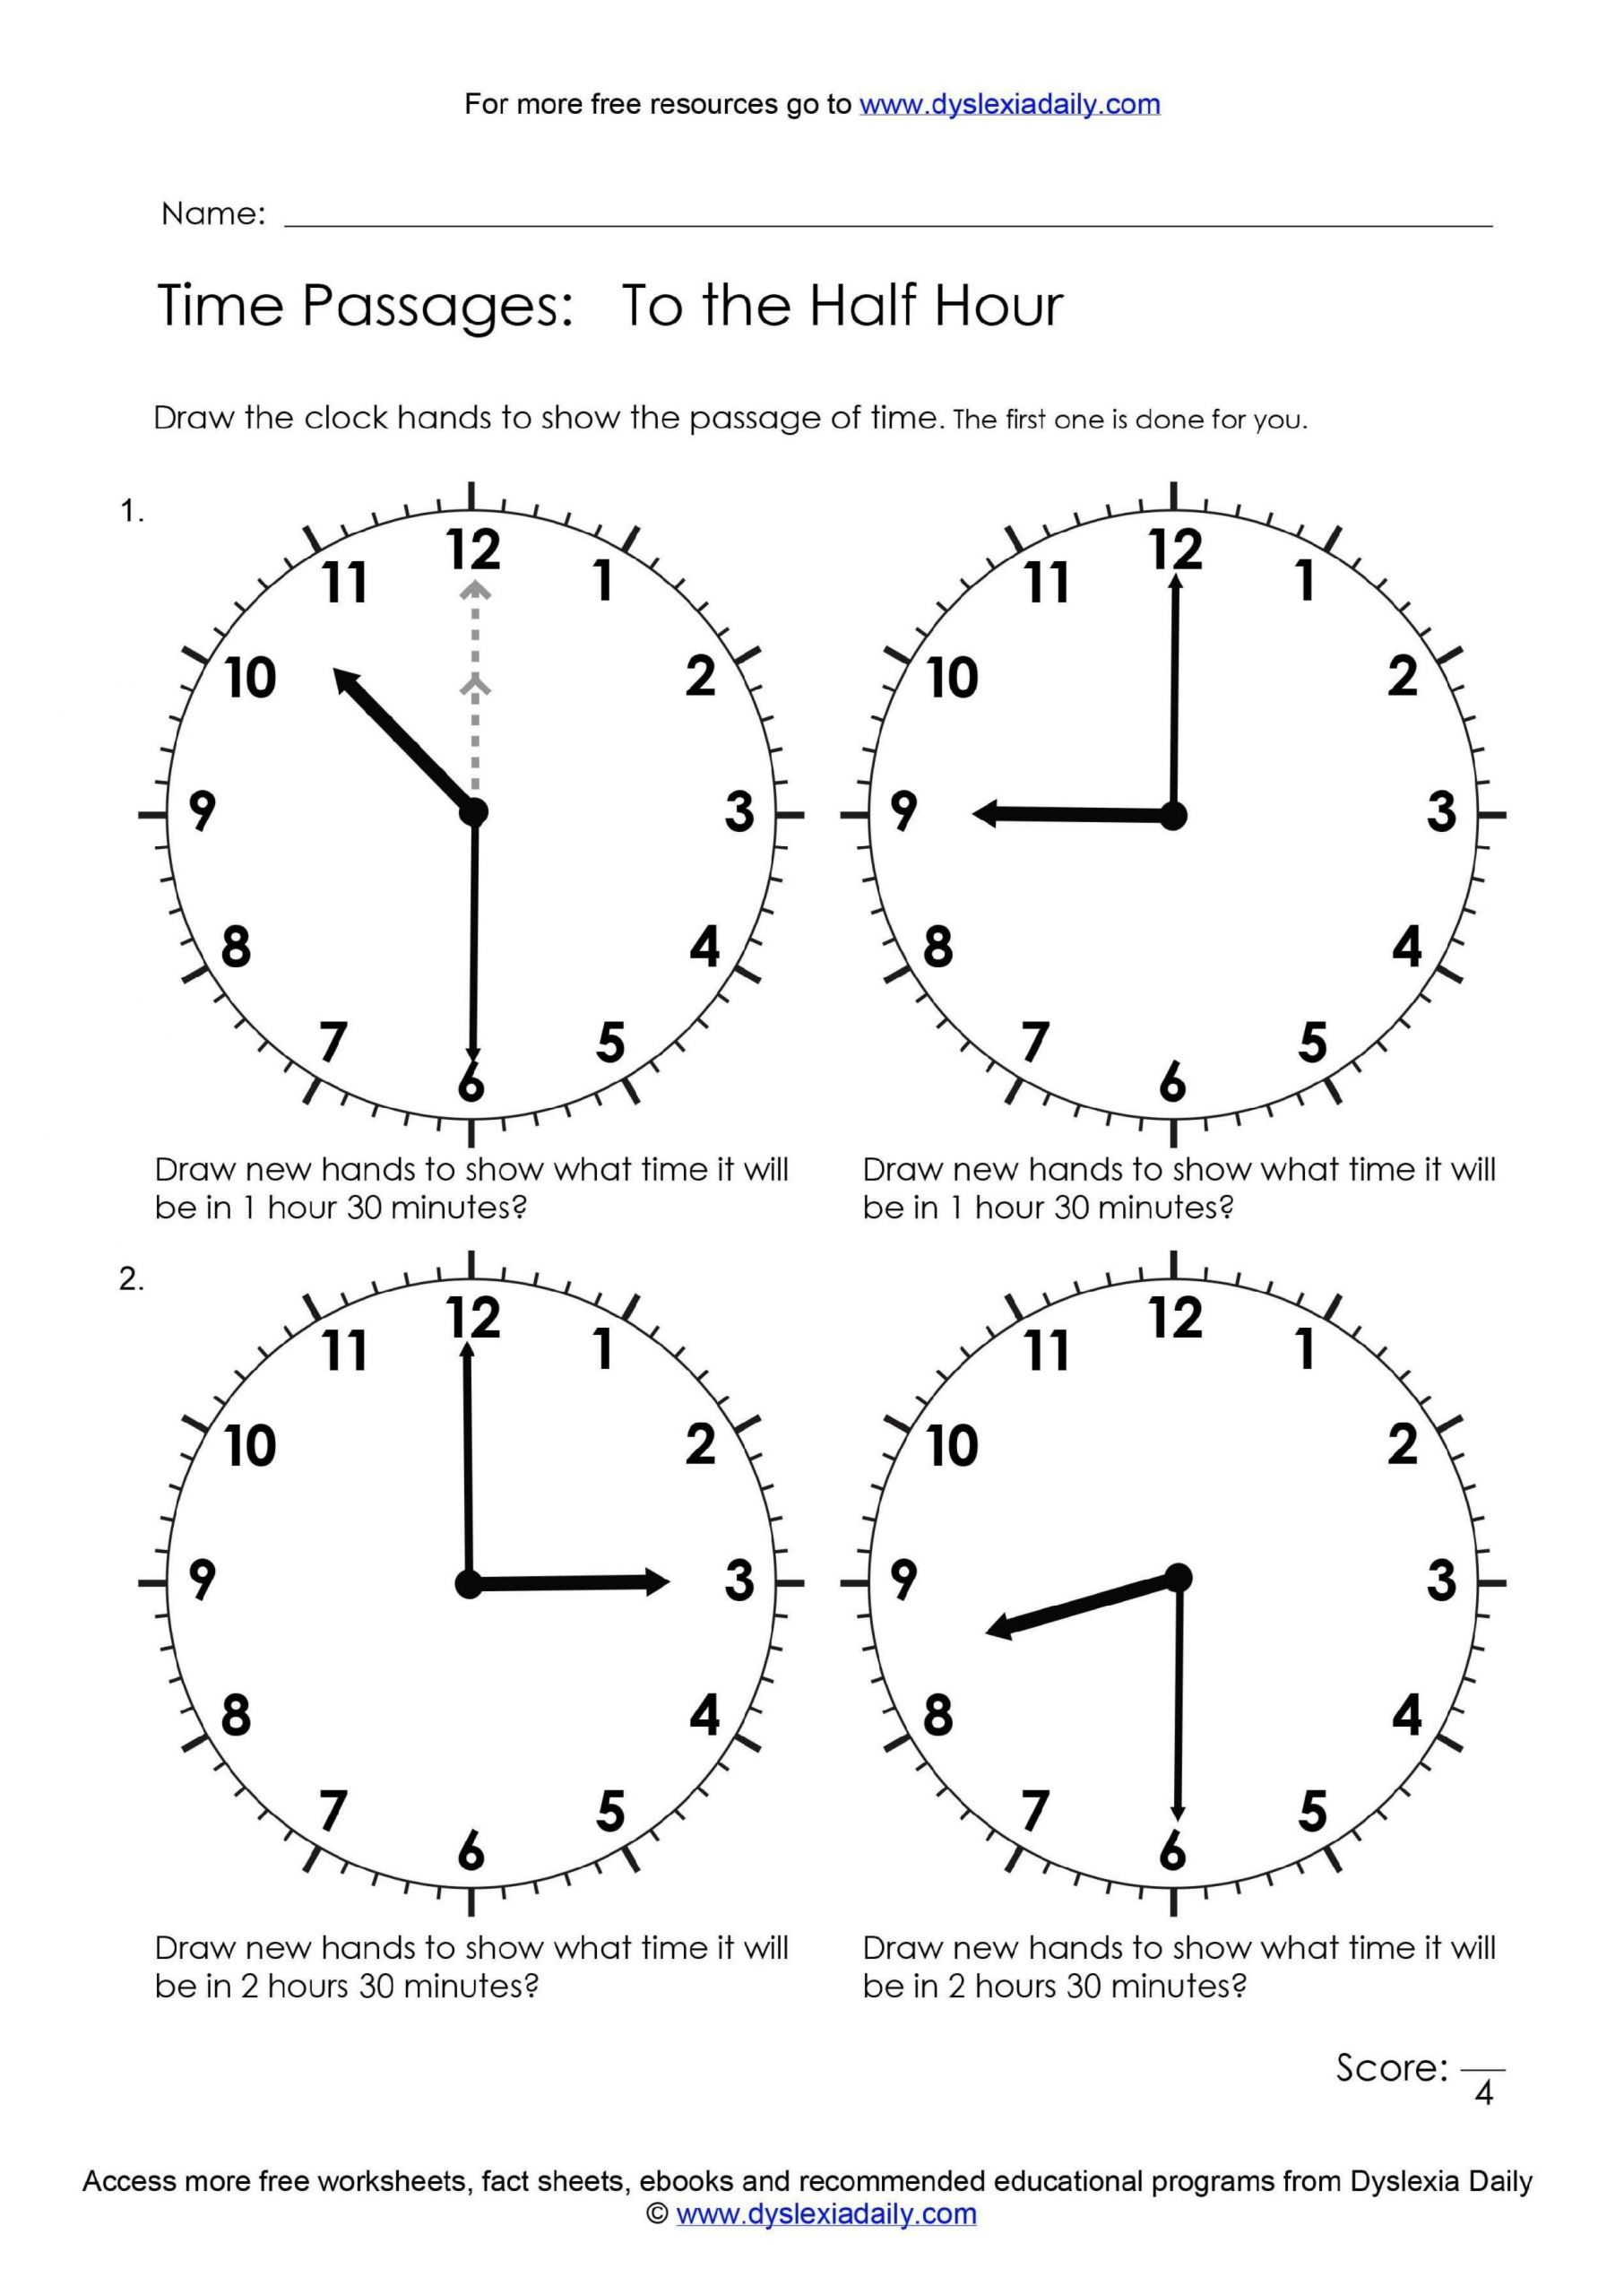 hight resolution of 4 Free Math Worksheets Third Grade 3 Division Long Division with Remainder  within 1 100 - apocalomegaproductions.com